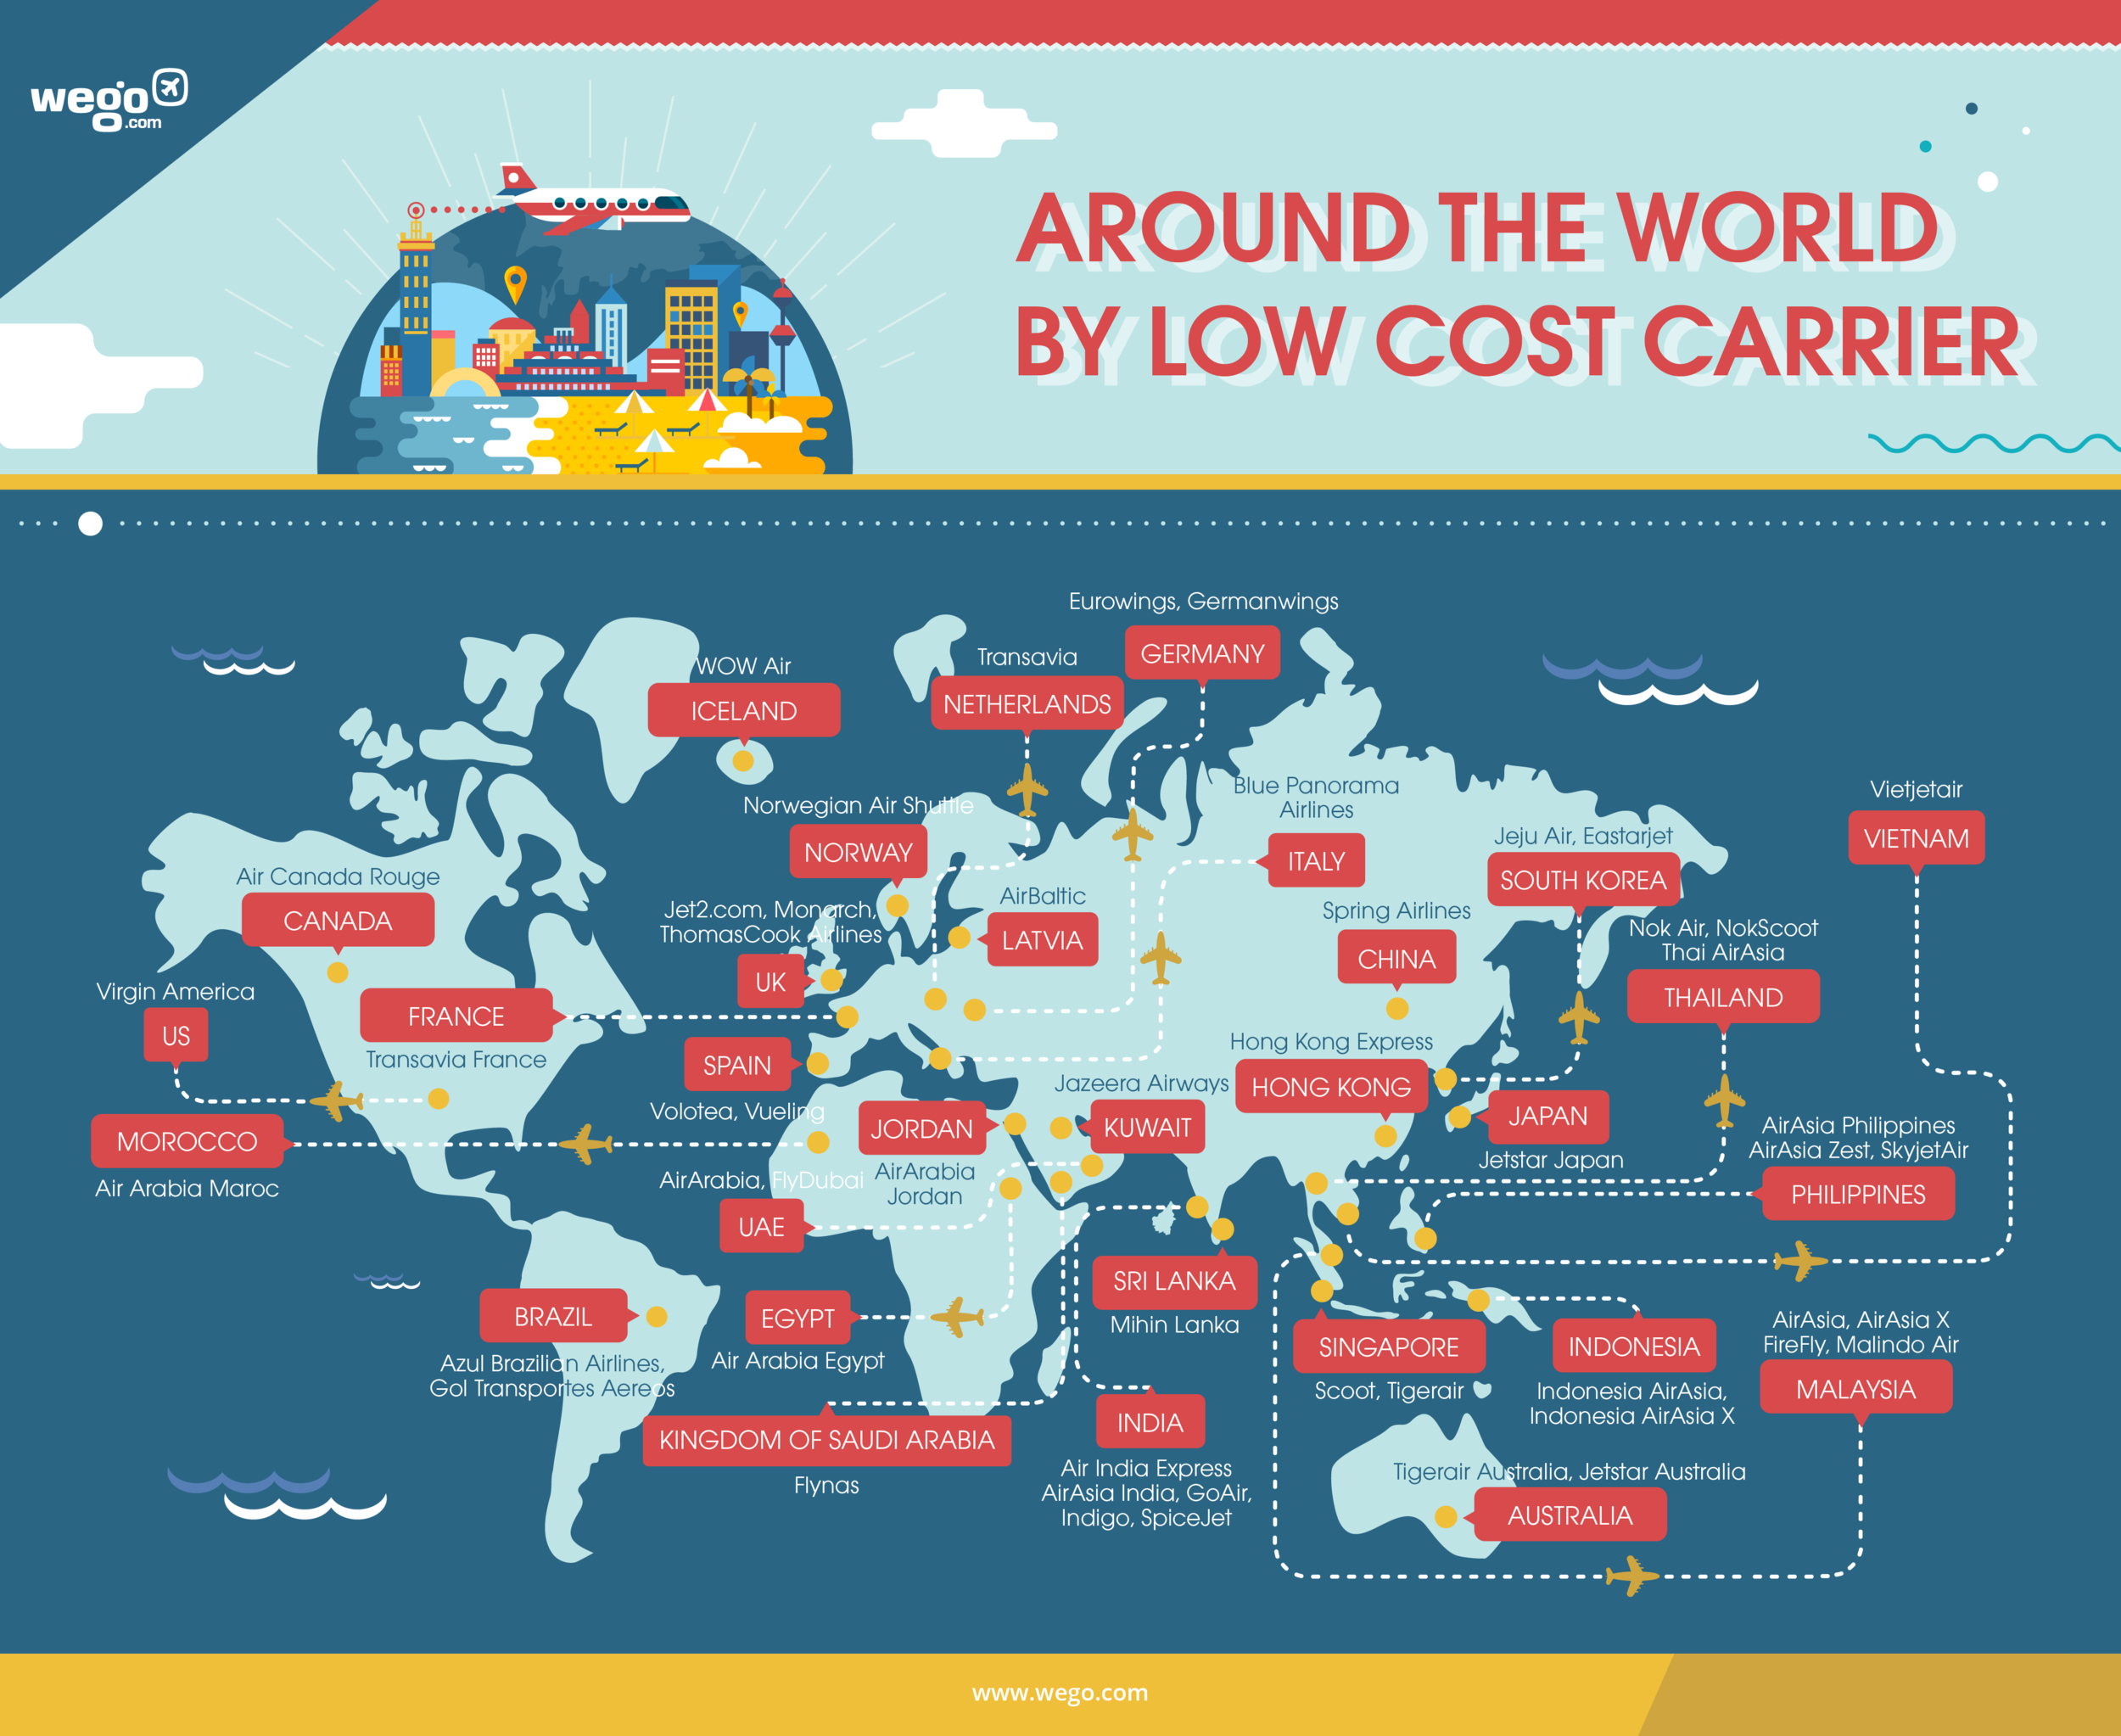 A depicition of the various low cost airlines around the world, photo from wego.com